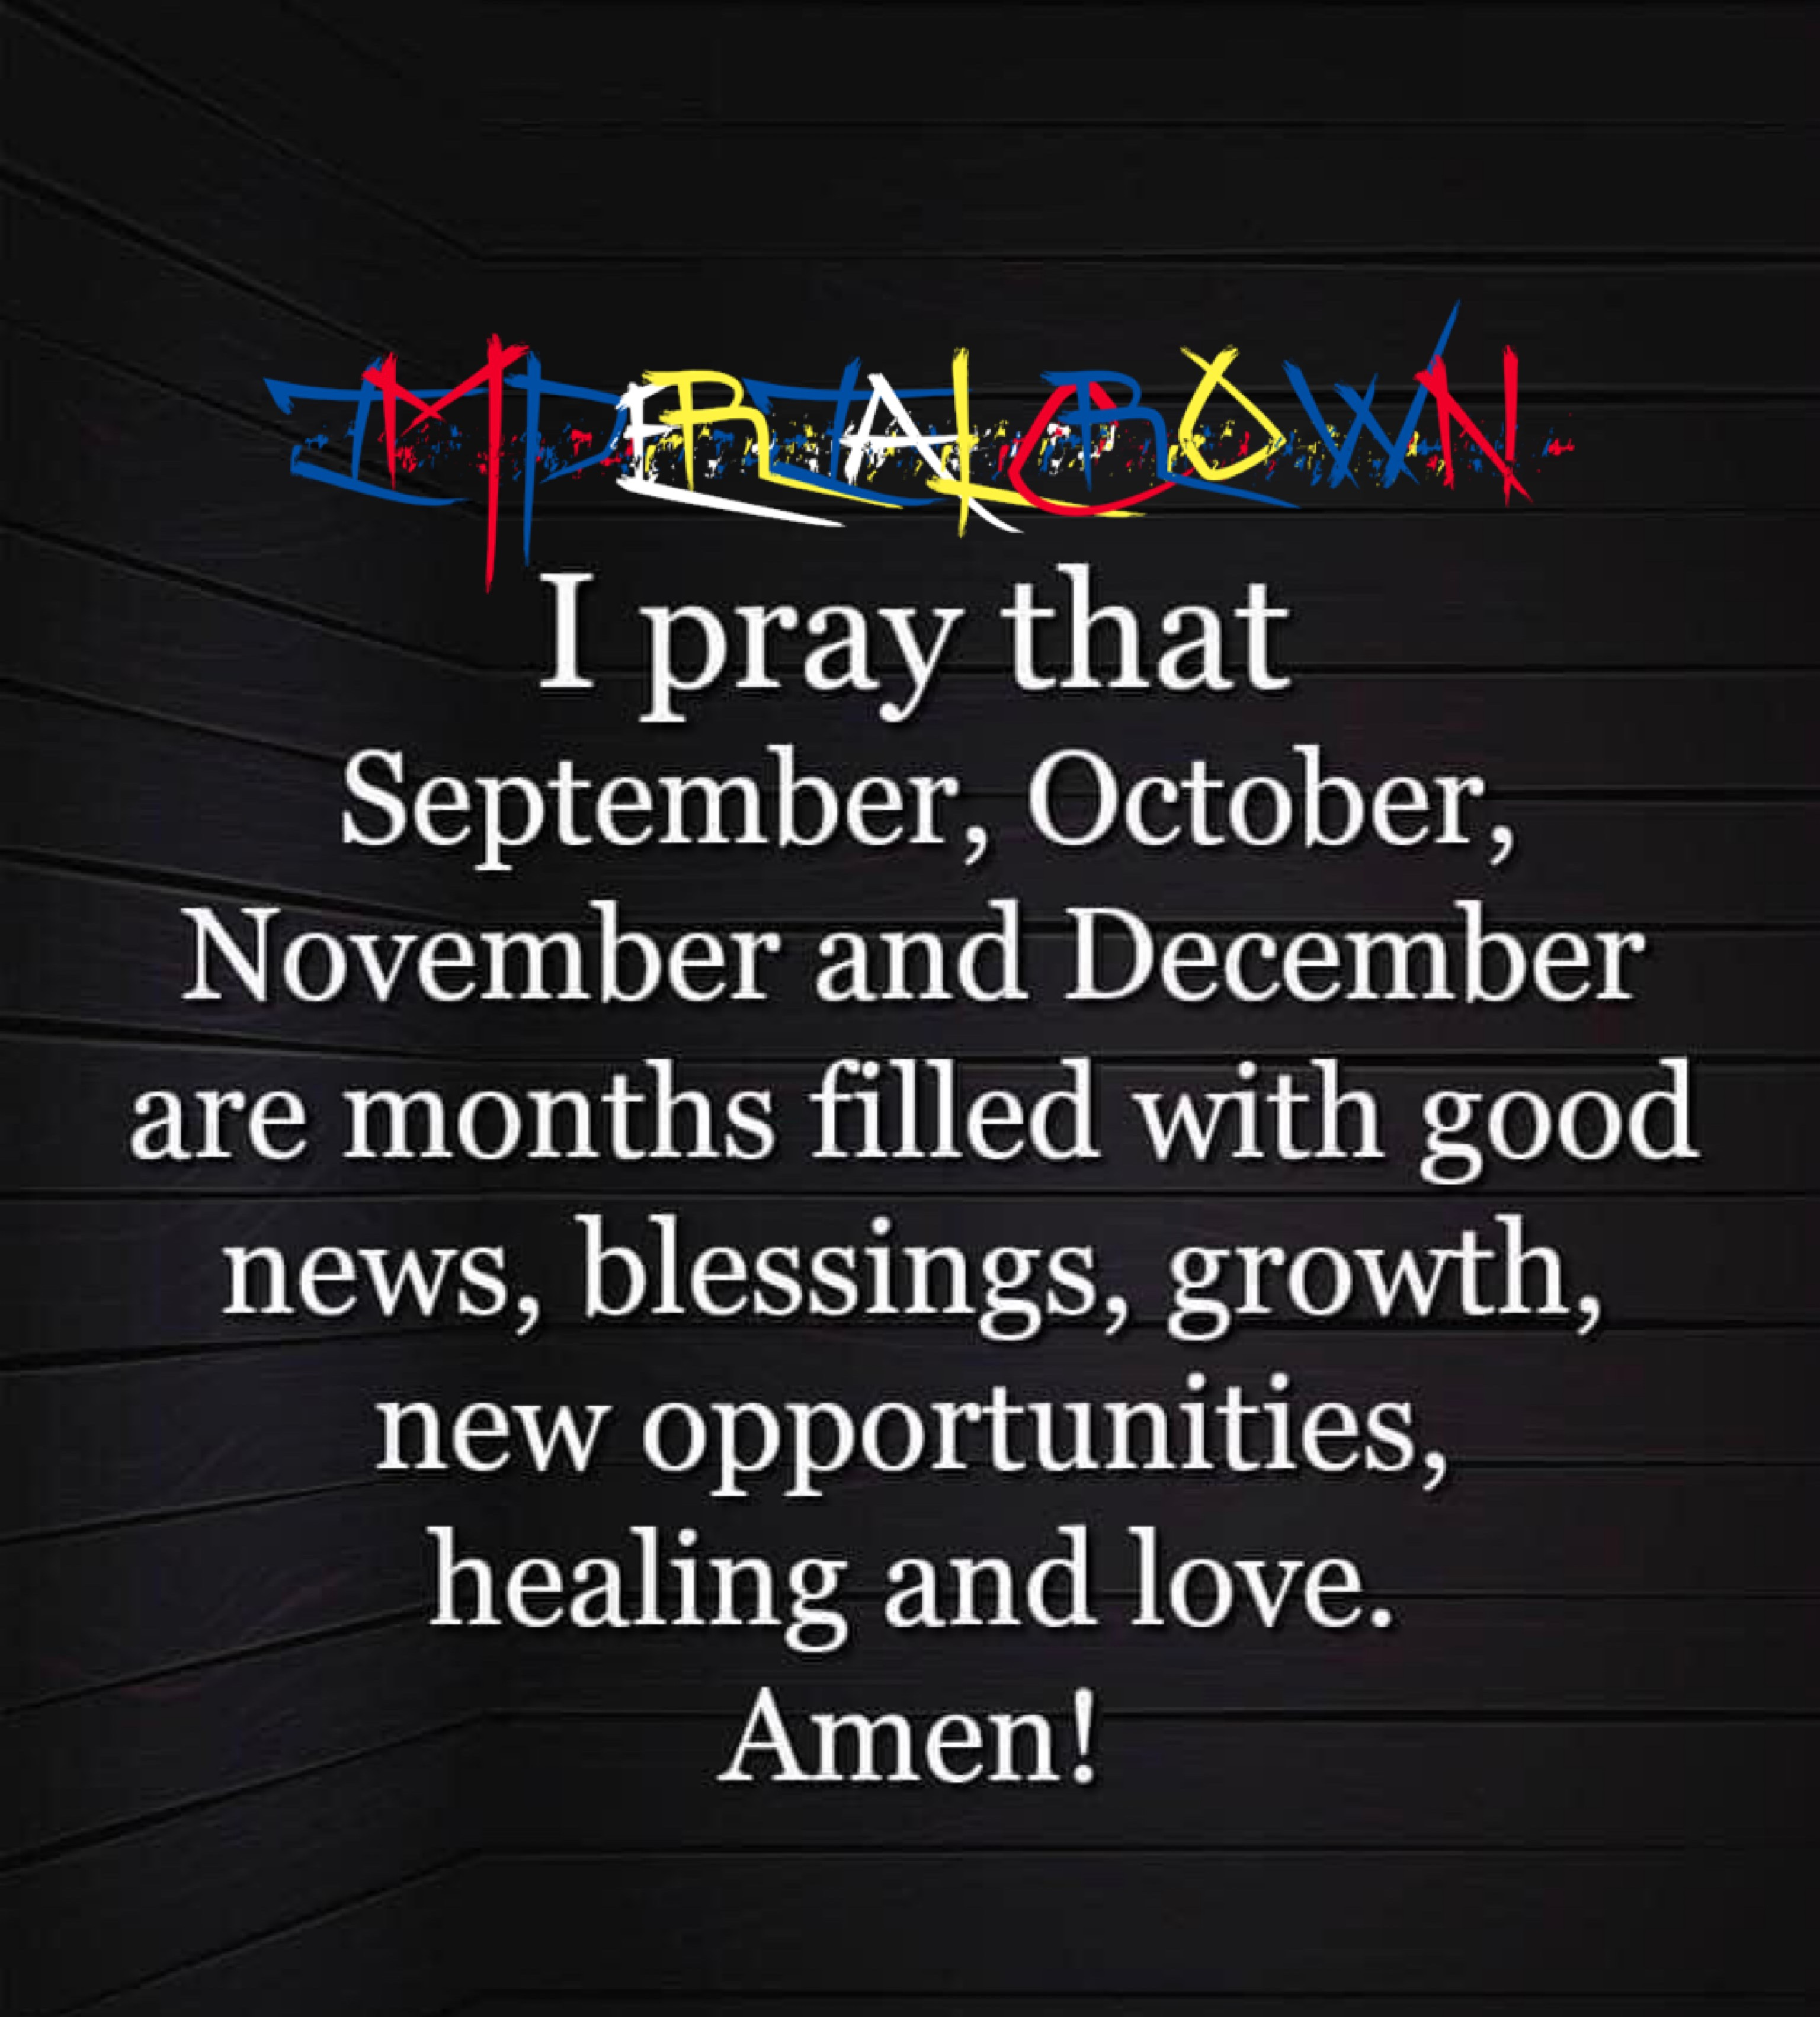 I pray September October November and December are months filled with good news blessings growth new opportunities healing and love